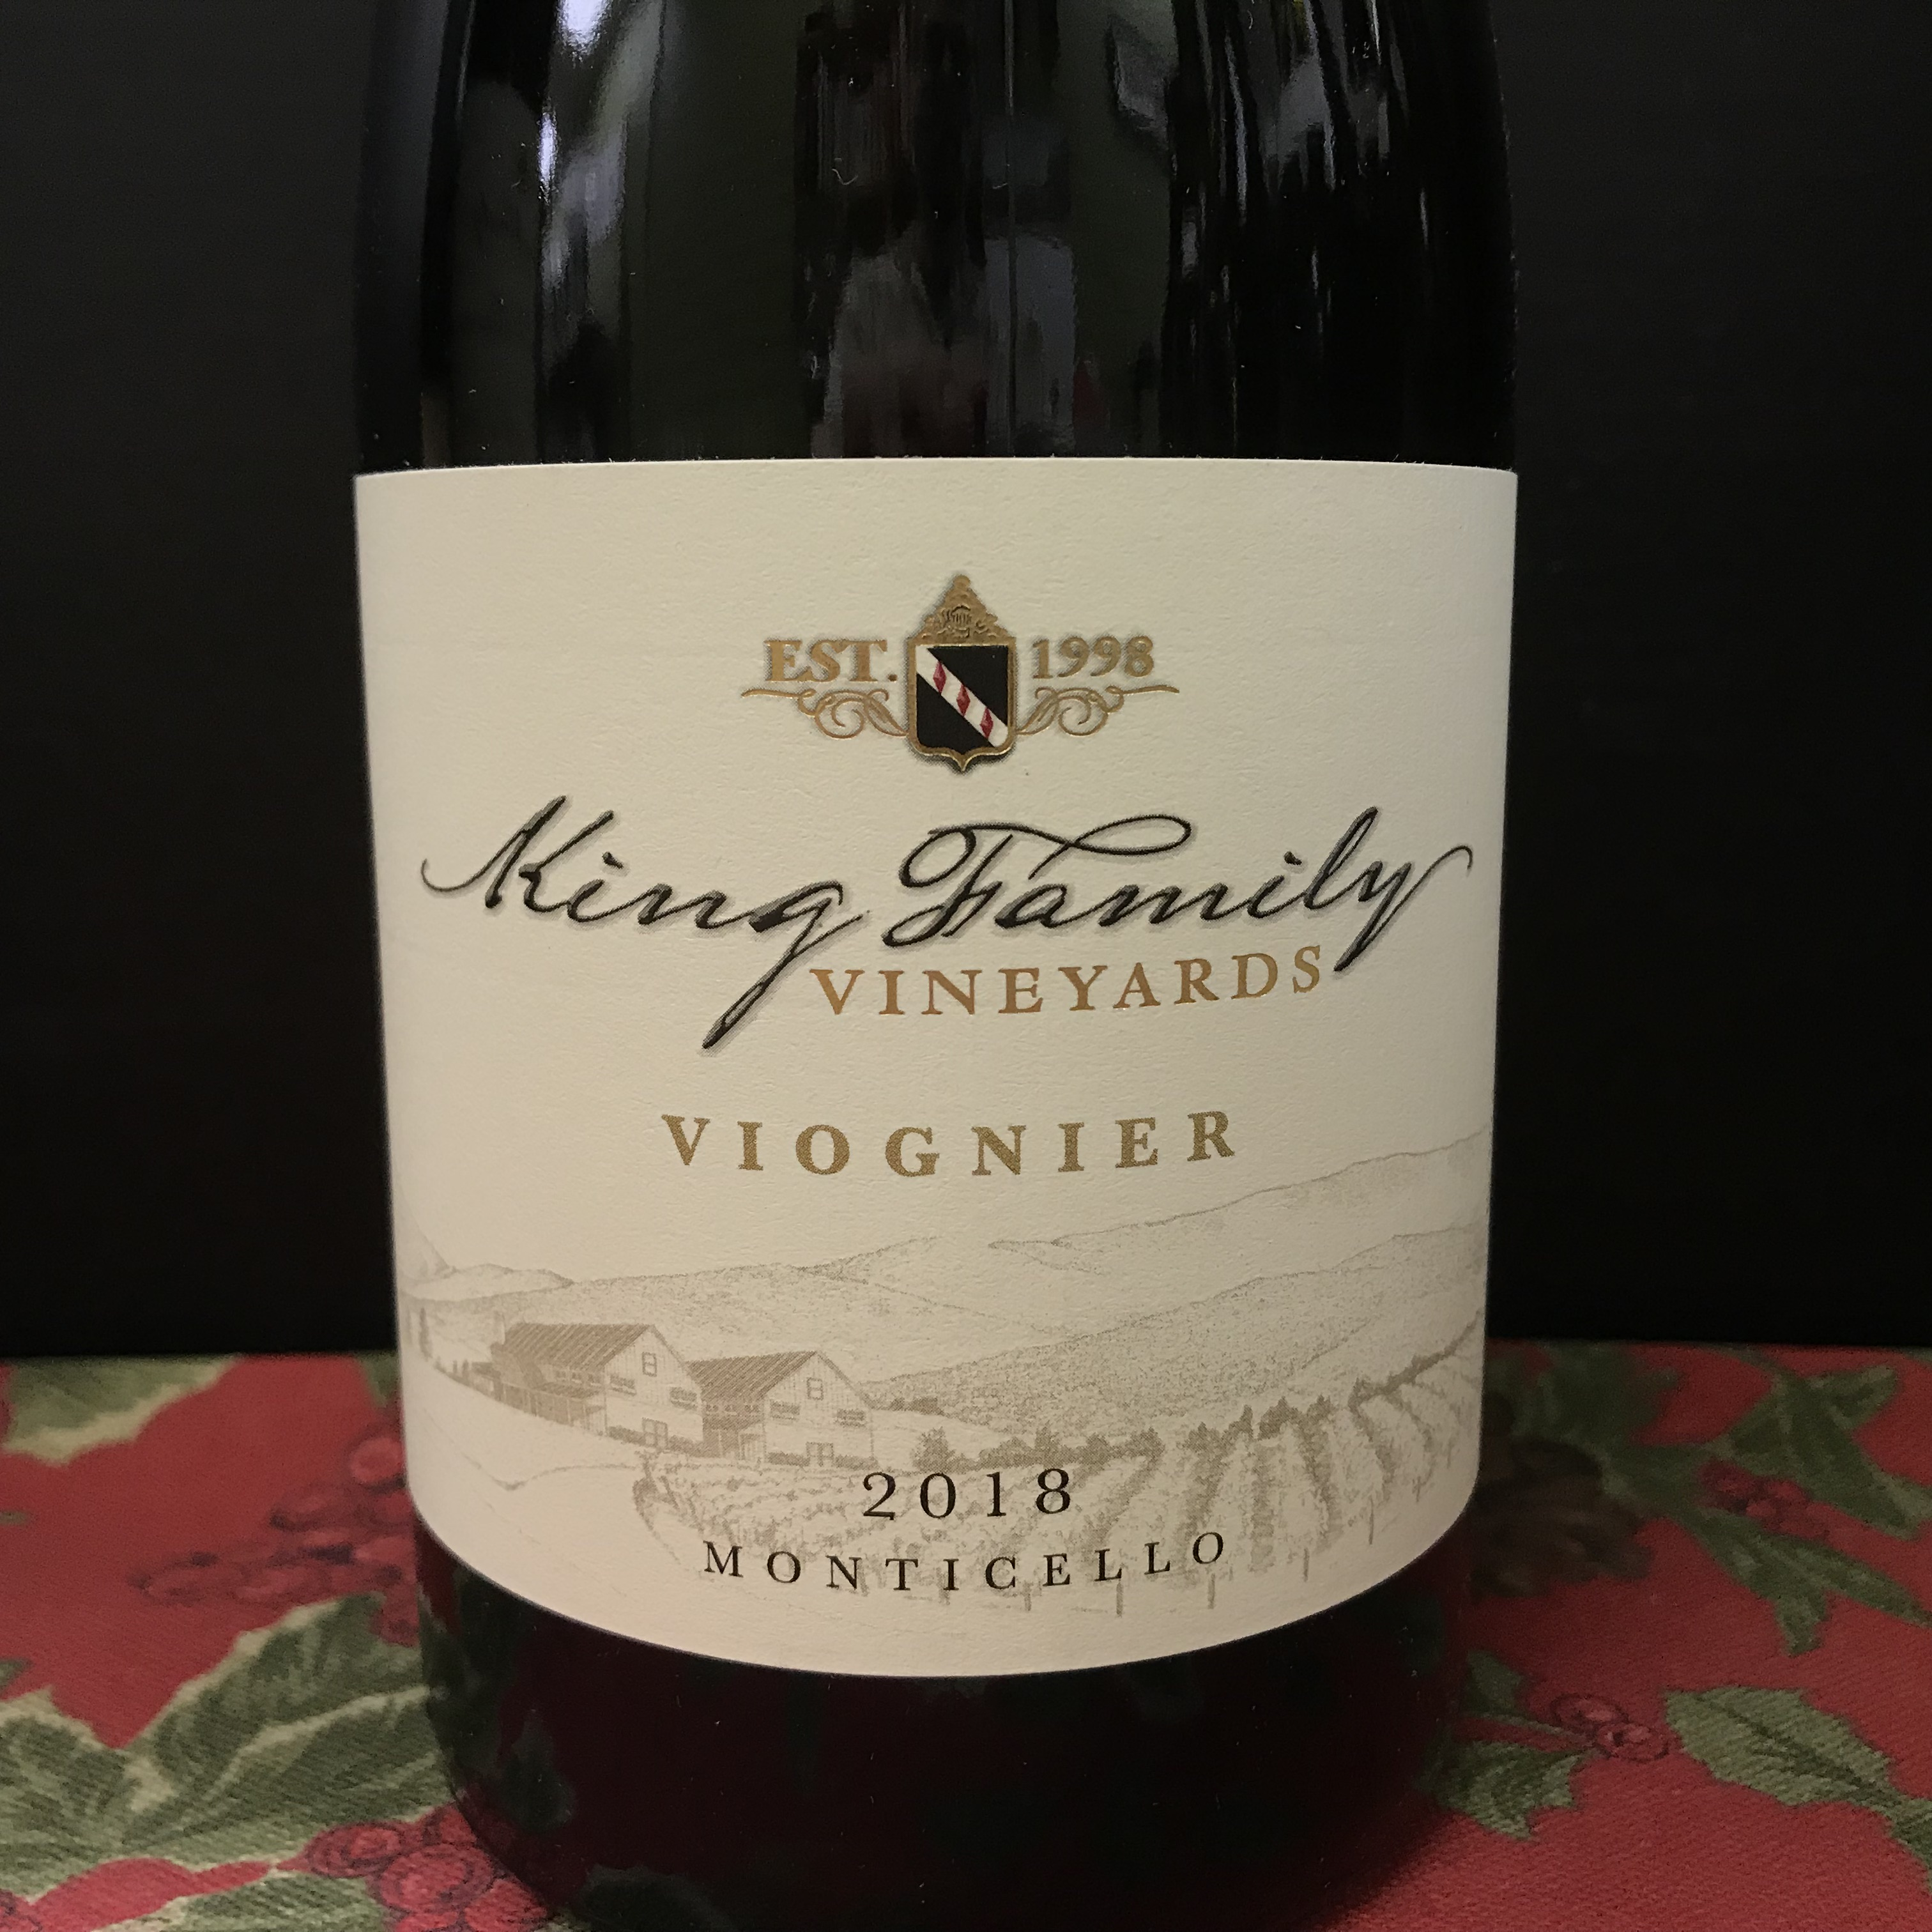 King Family Viognier Monticello 2018